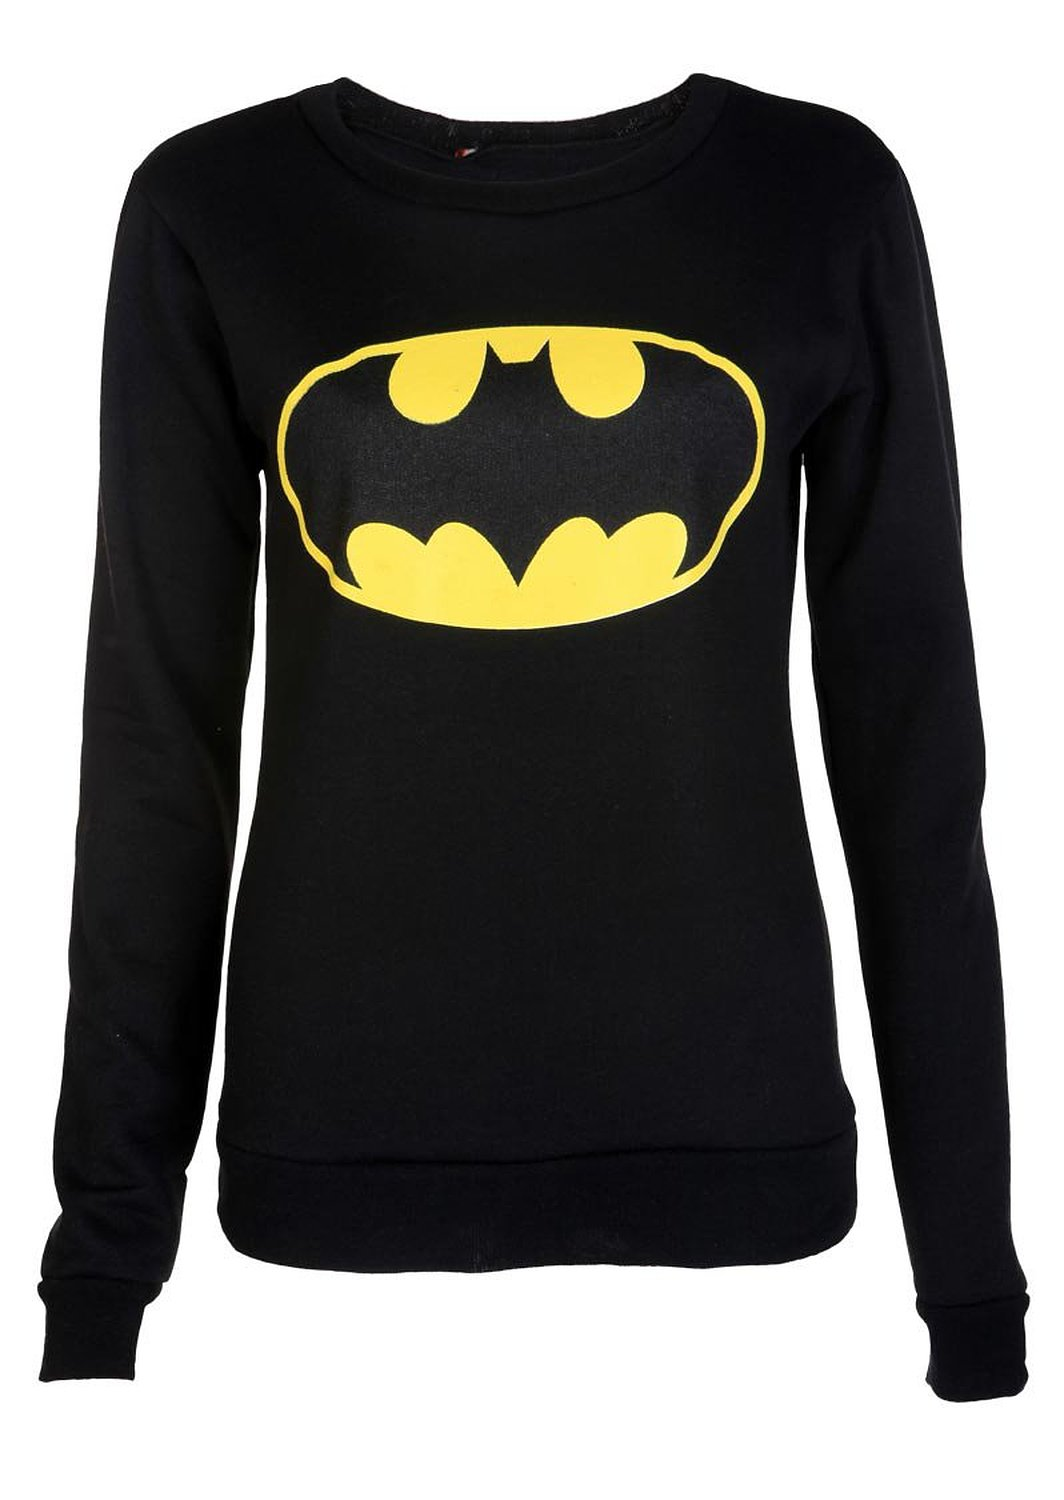 You searched for: womens batman shirt! Etsy is the home to thousands of handmade, vintage, and one-of-a-kind products and gifts related to your search. No matter what you're looking for or where you are in the world, our global marketplace of sellers can help you .